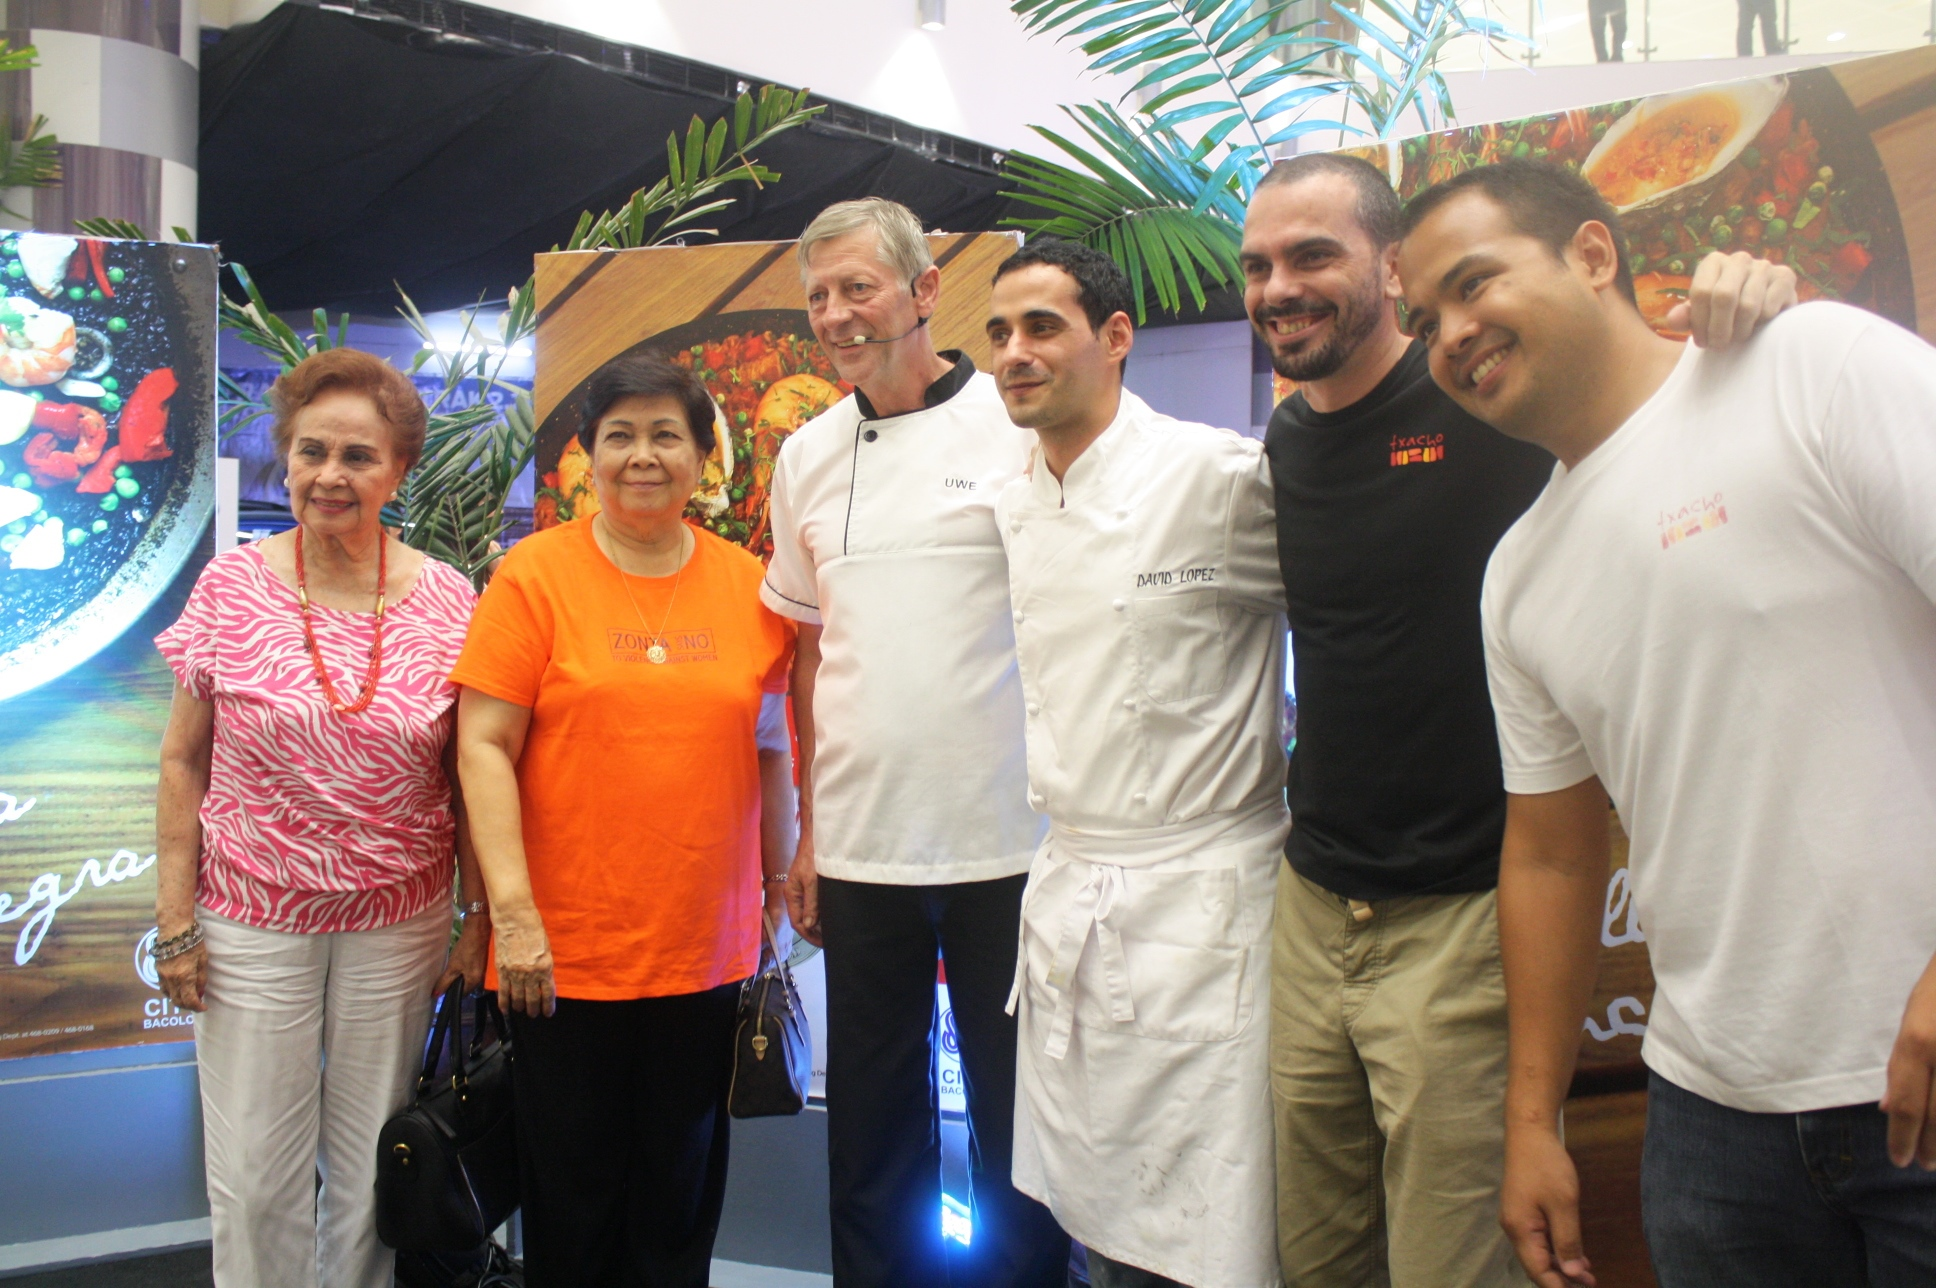 Chef Uwe (3rd from left) and Chef David (4th from left) brought the Spanish flavor in Bacolod through the Paella Cook Off.